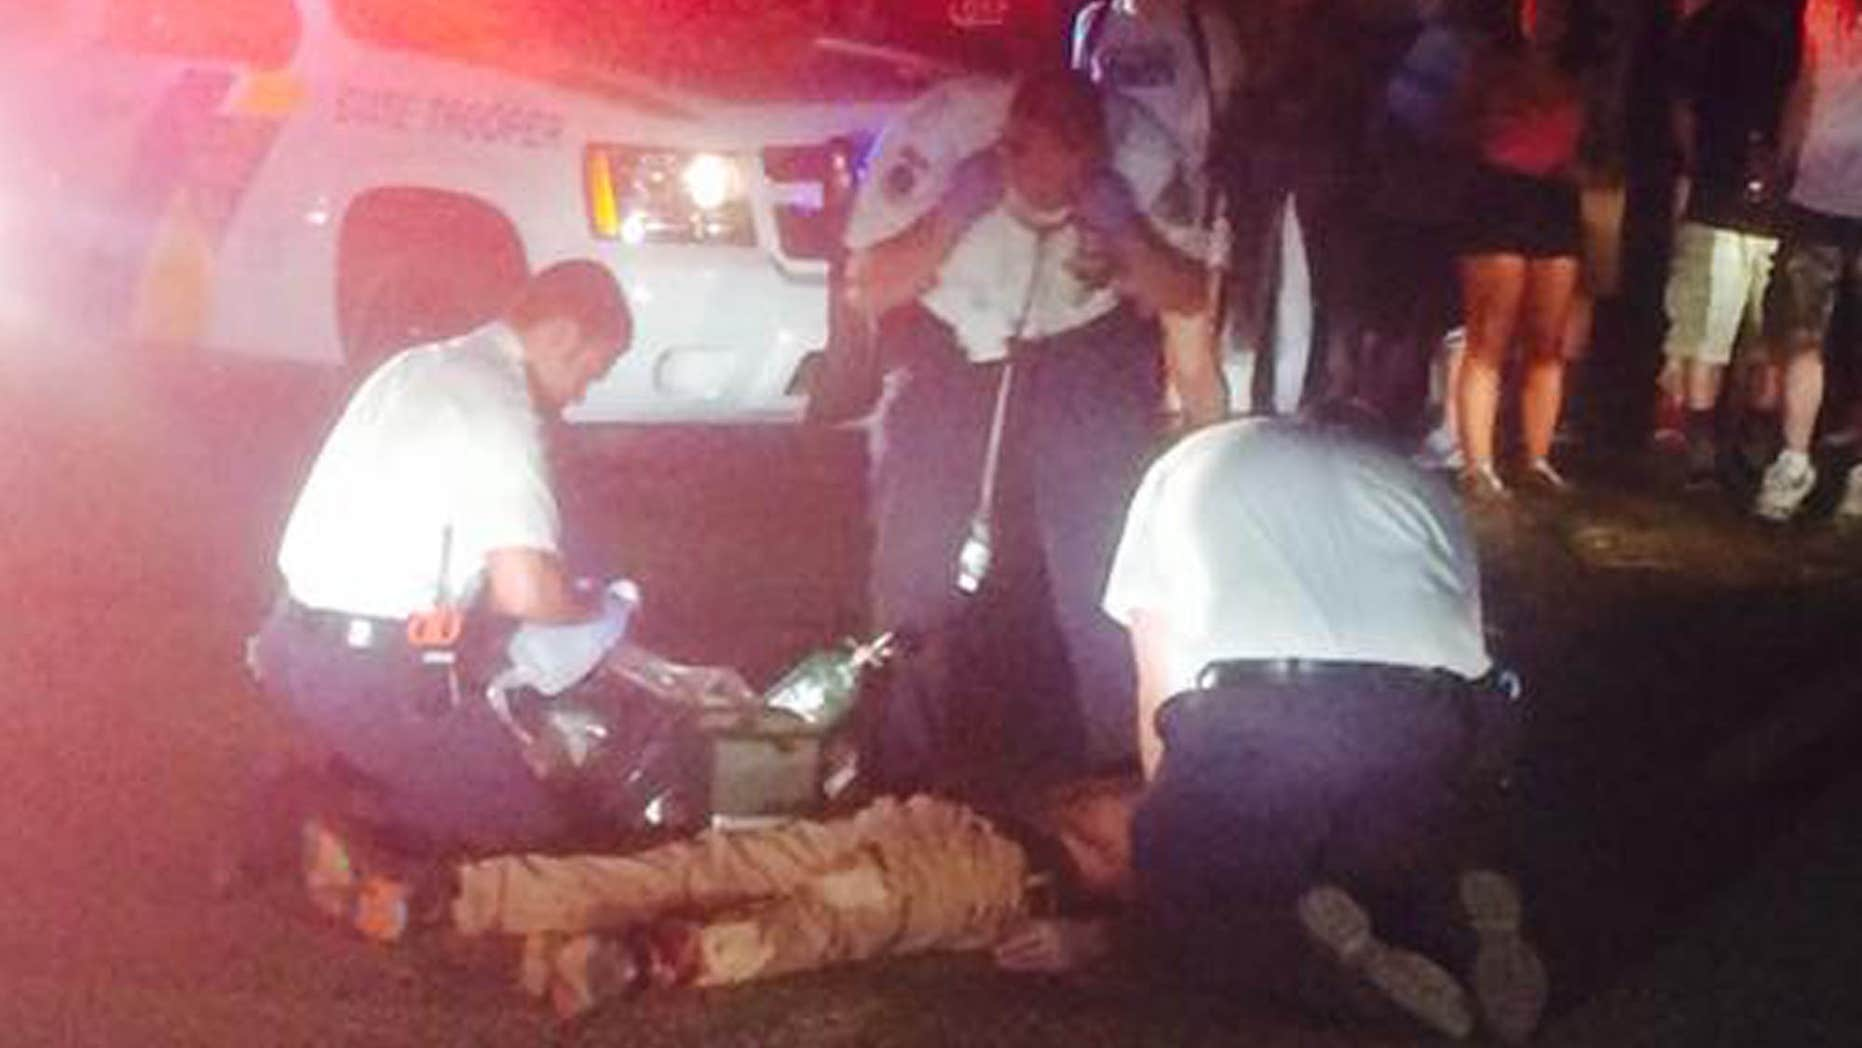 Aug . 3, 2015: Authorities attend to people following a shooting in Holmdel, N.J.